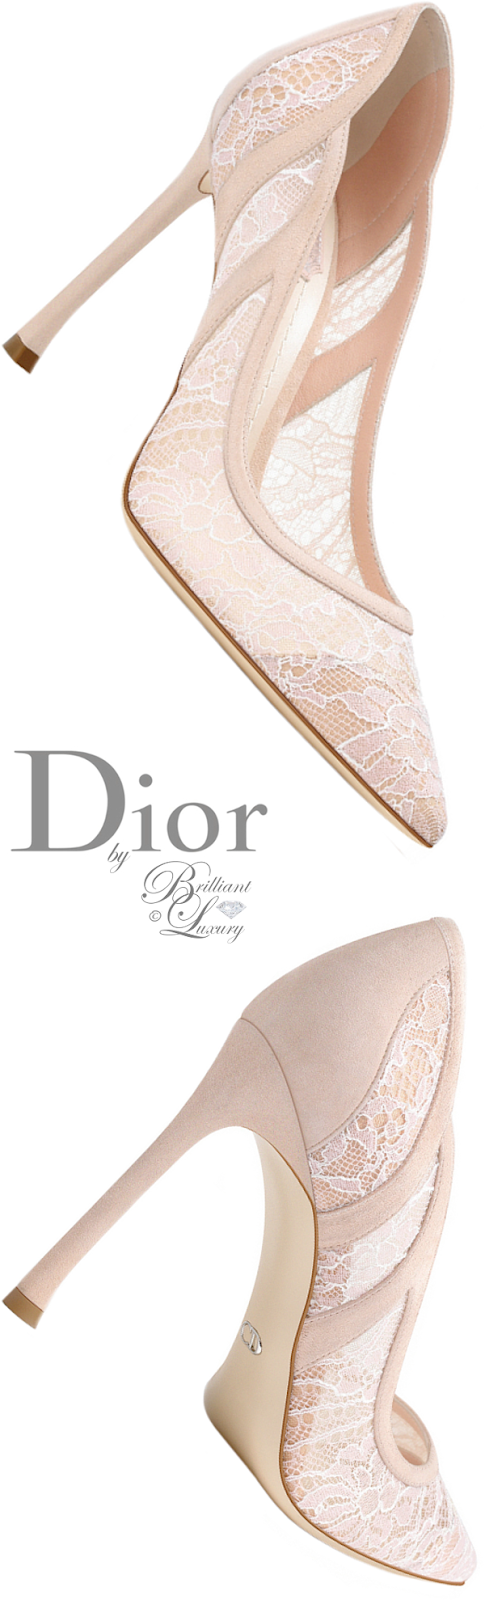 Brilliant Luxury ♦ Dior nude lace pump